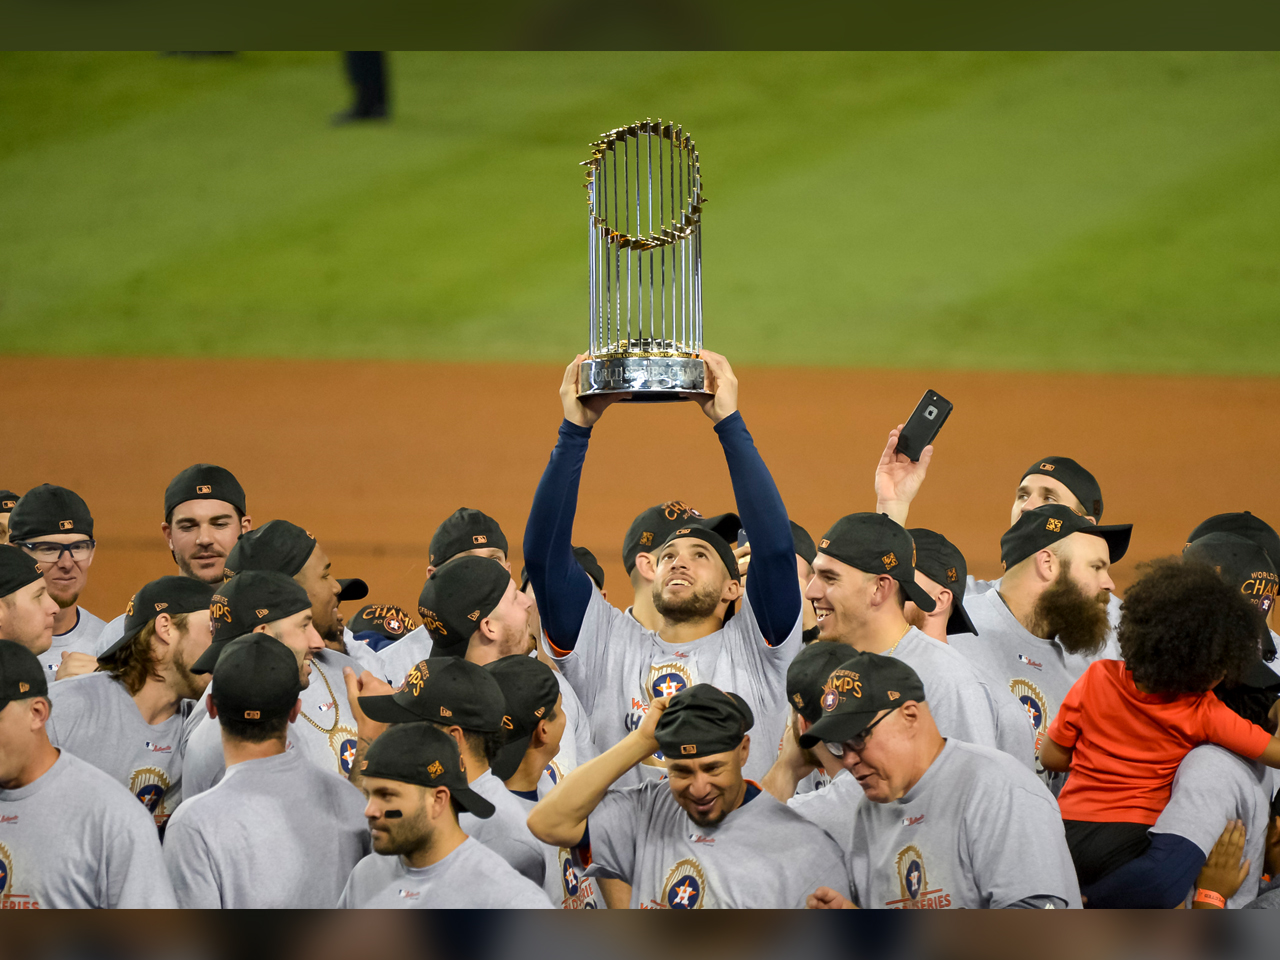 PHOTO: Houston Astros are the 2017 World Series Champions after beating the LA Dodgers 5-1 in game 7, Photo Date: 11/2/17. (Photo: ZUMA Press / MGN Online)